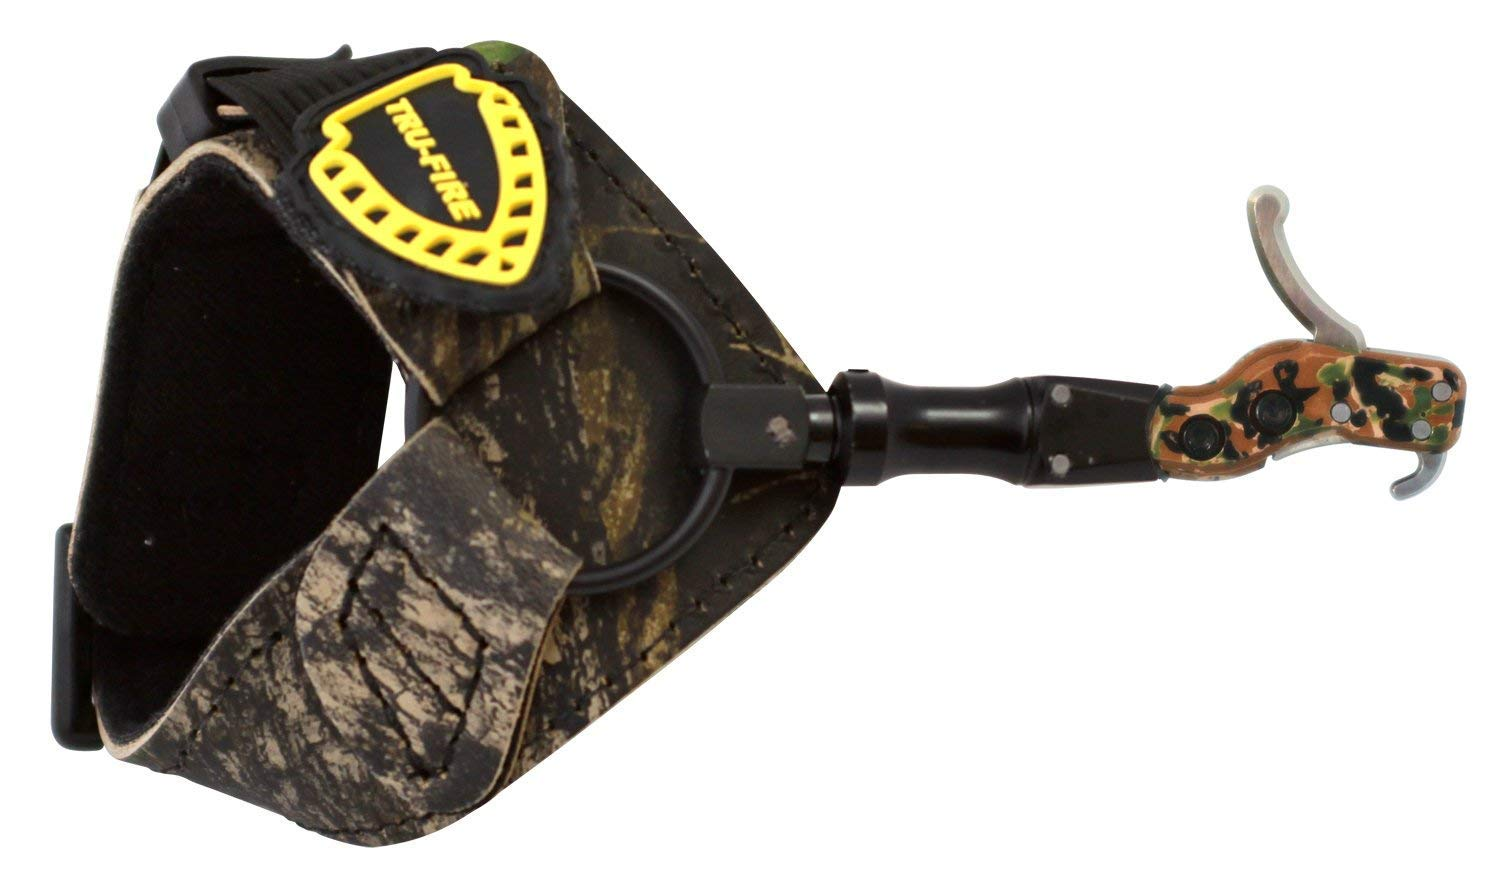 TruFire Hardcore Buckle Foldback Adjustable Archery Compound Bow Release - Camo Wrist Strap with Foldback Design (Pack of 5)